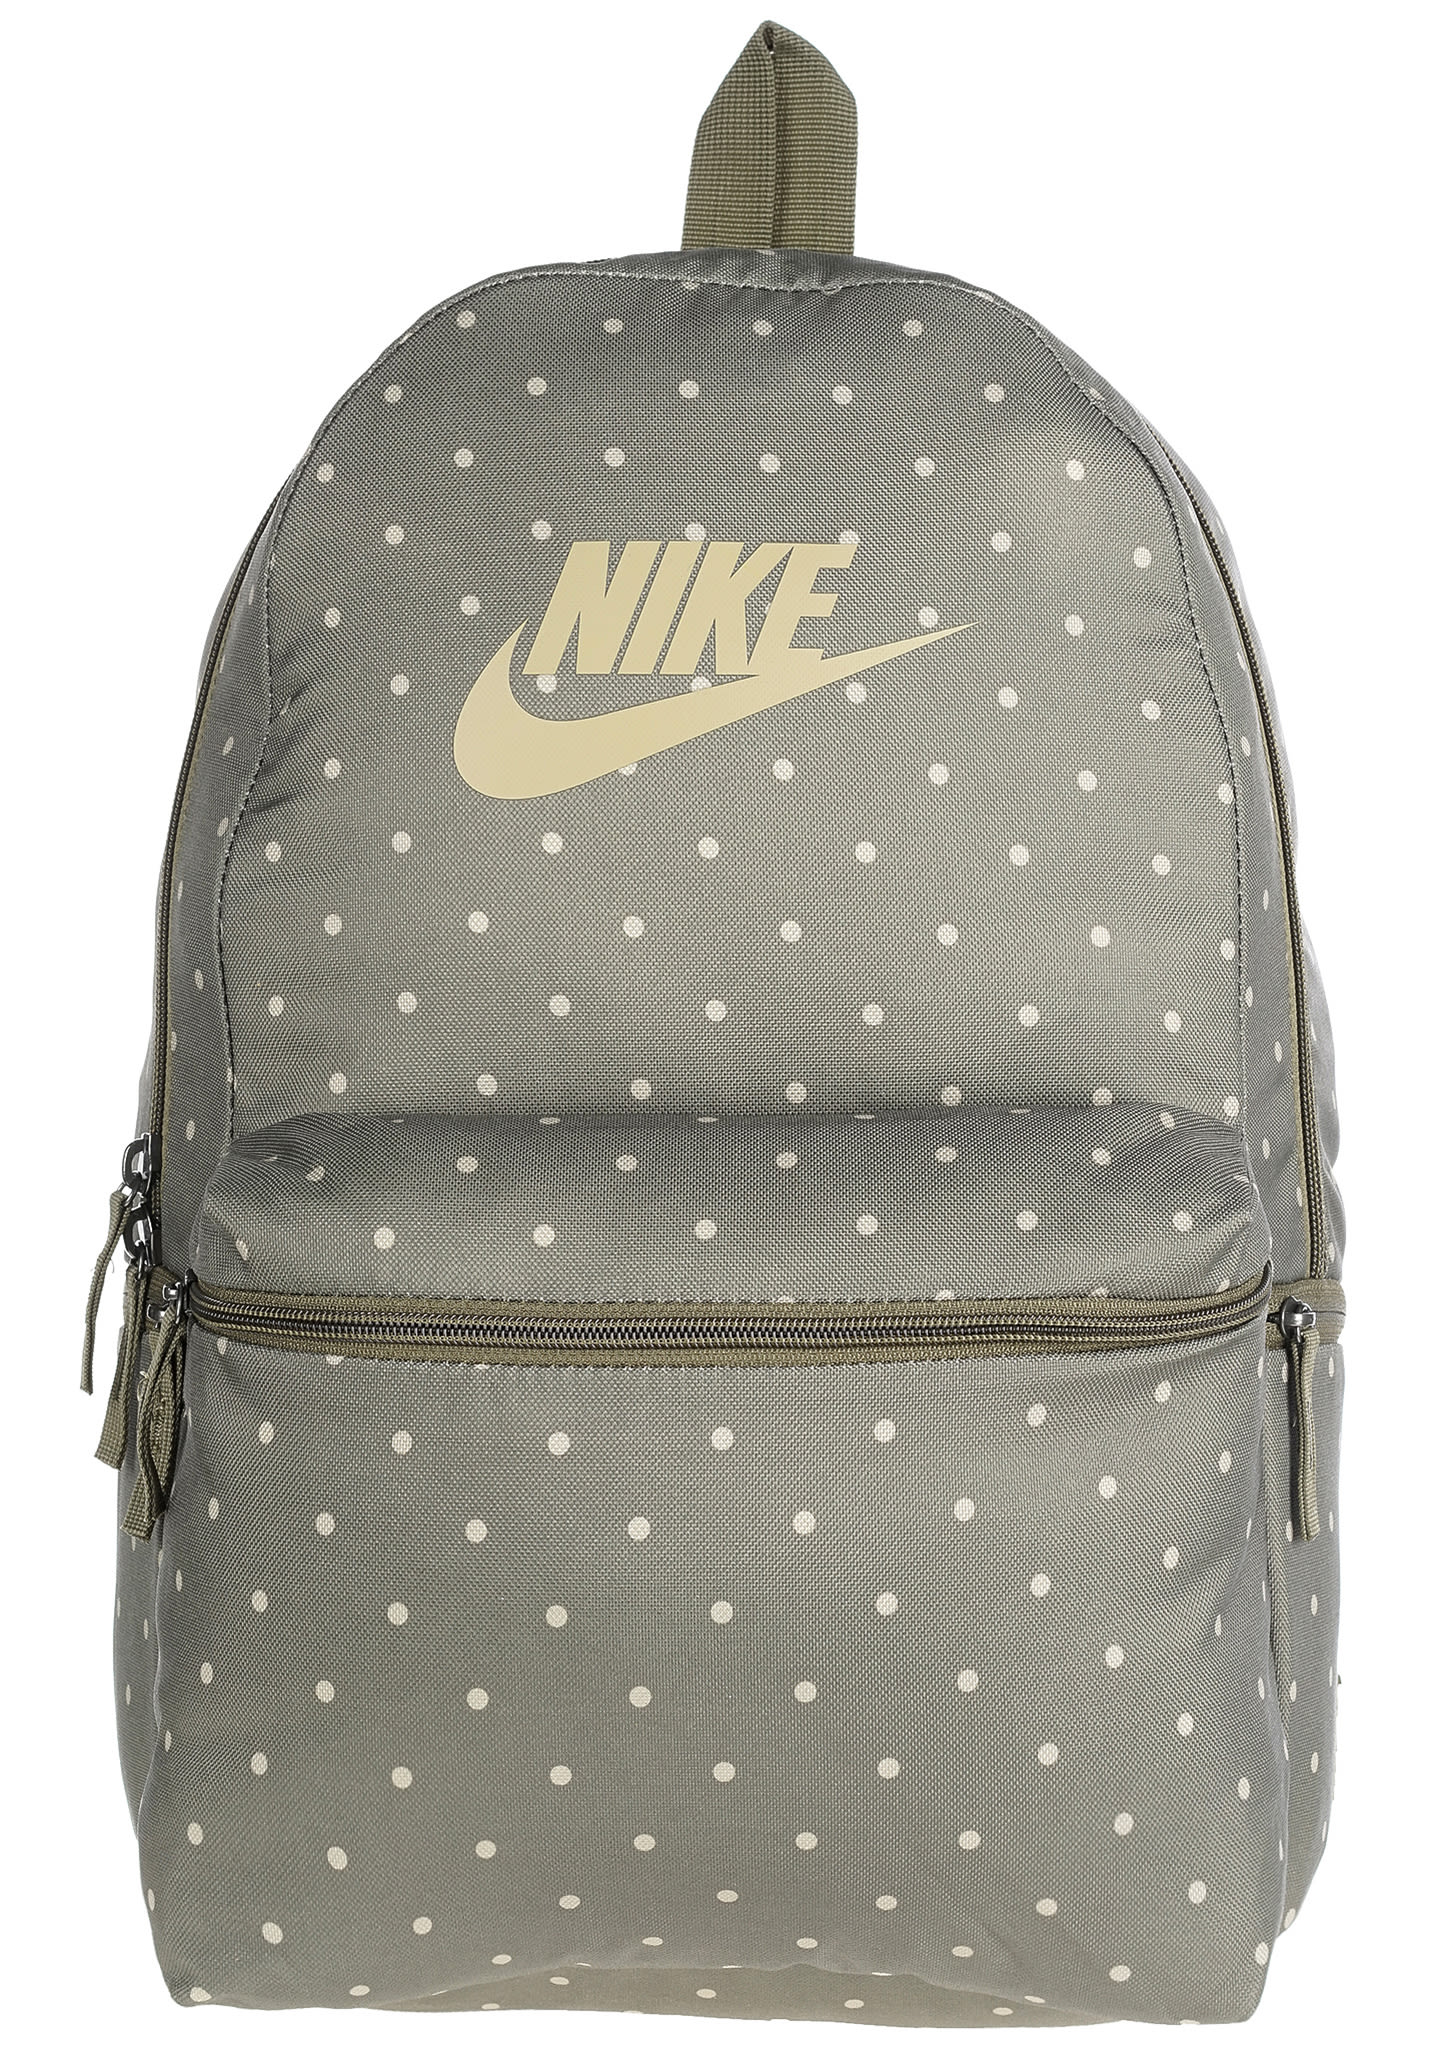 19573bee9b3f1 NIKE SPORTSWEAR Heritage - Aop - Backpack for Women - Green - Planet Sports